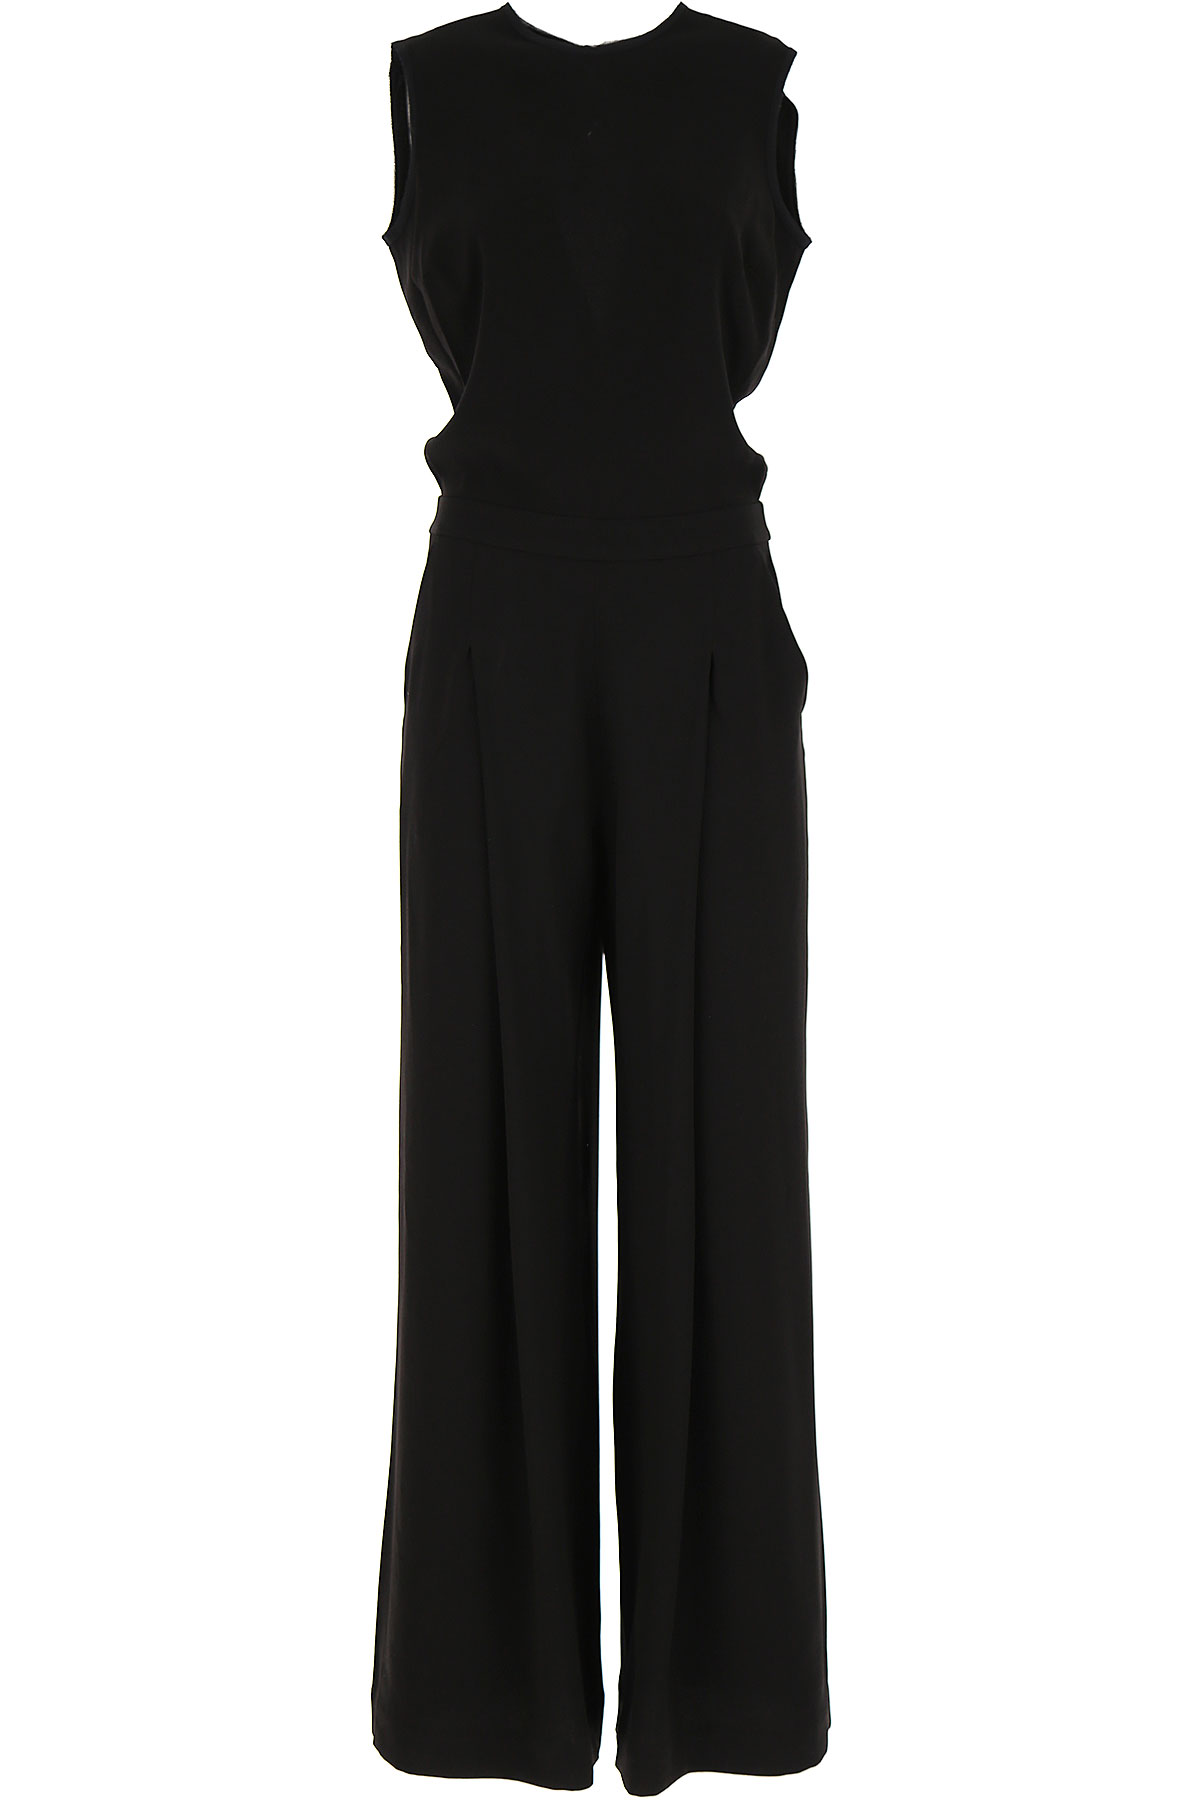 Alexander McQueen McQ Dress for Women, Evening Cocktail Party On Sale, Black, polyester, 2019, 10 4 6 6 8